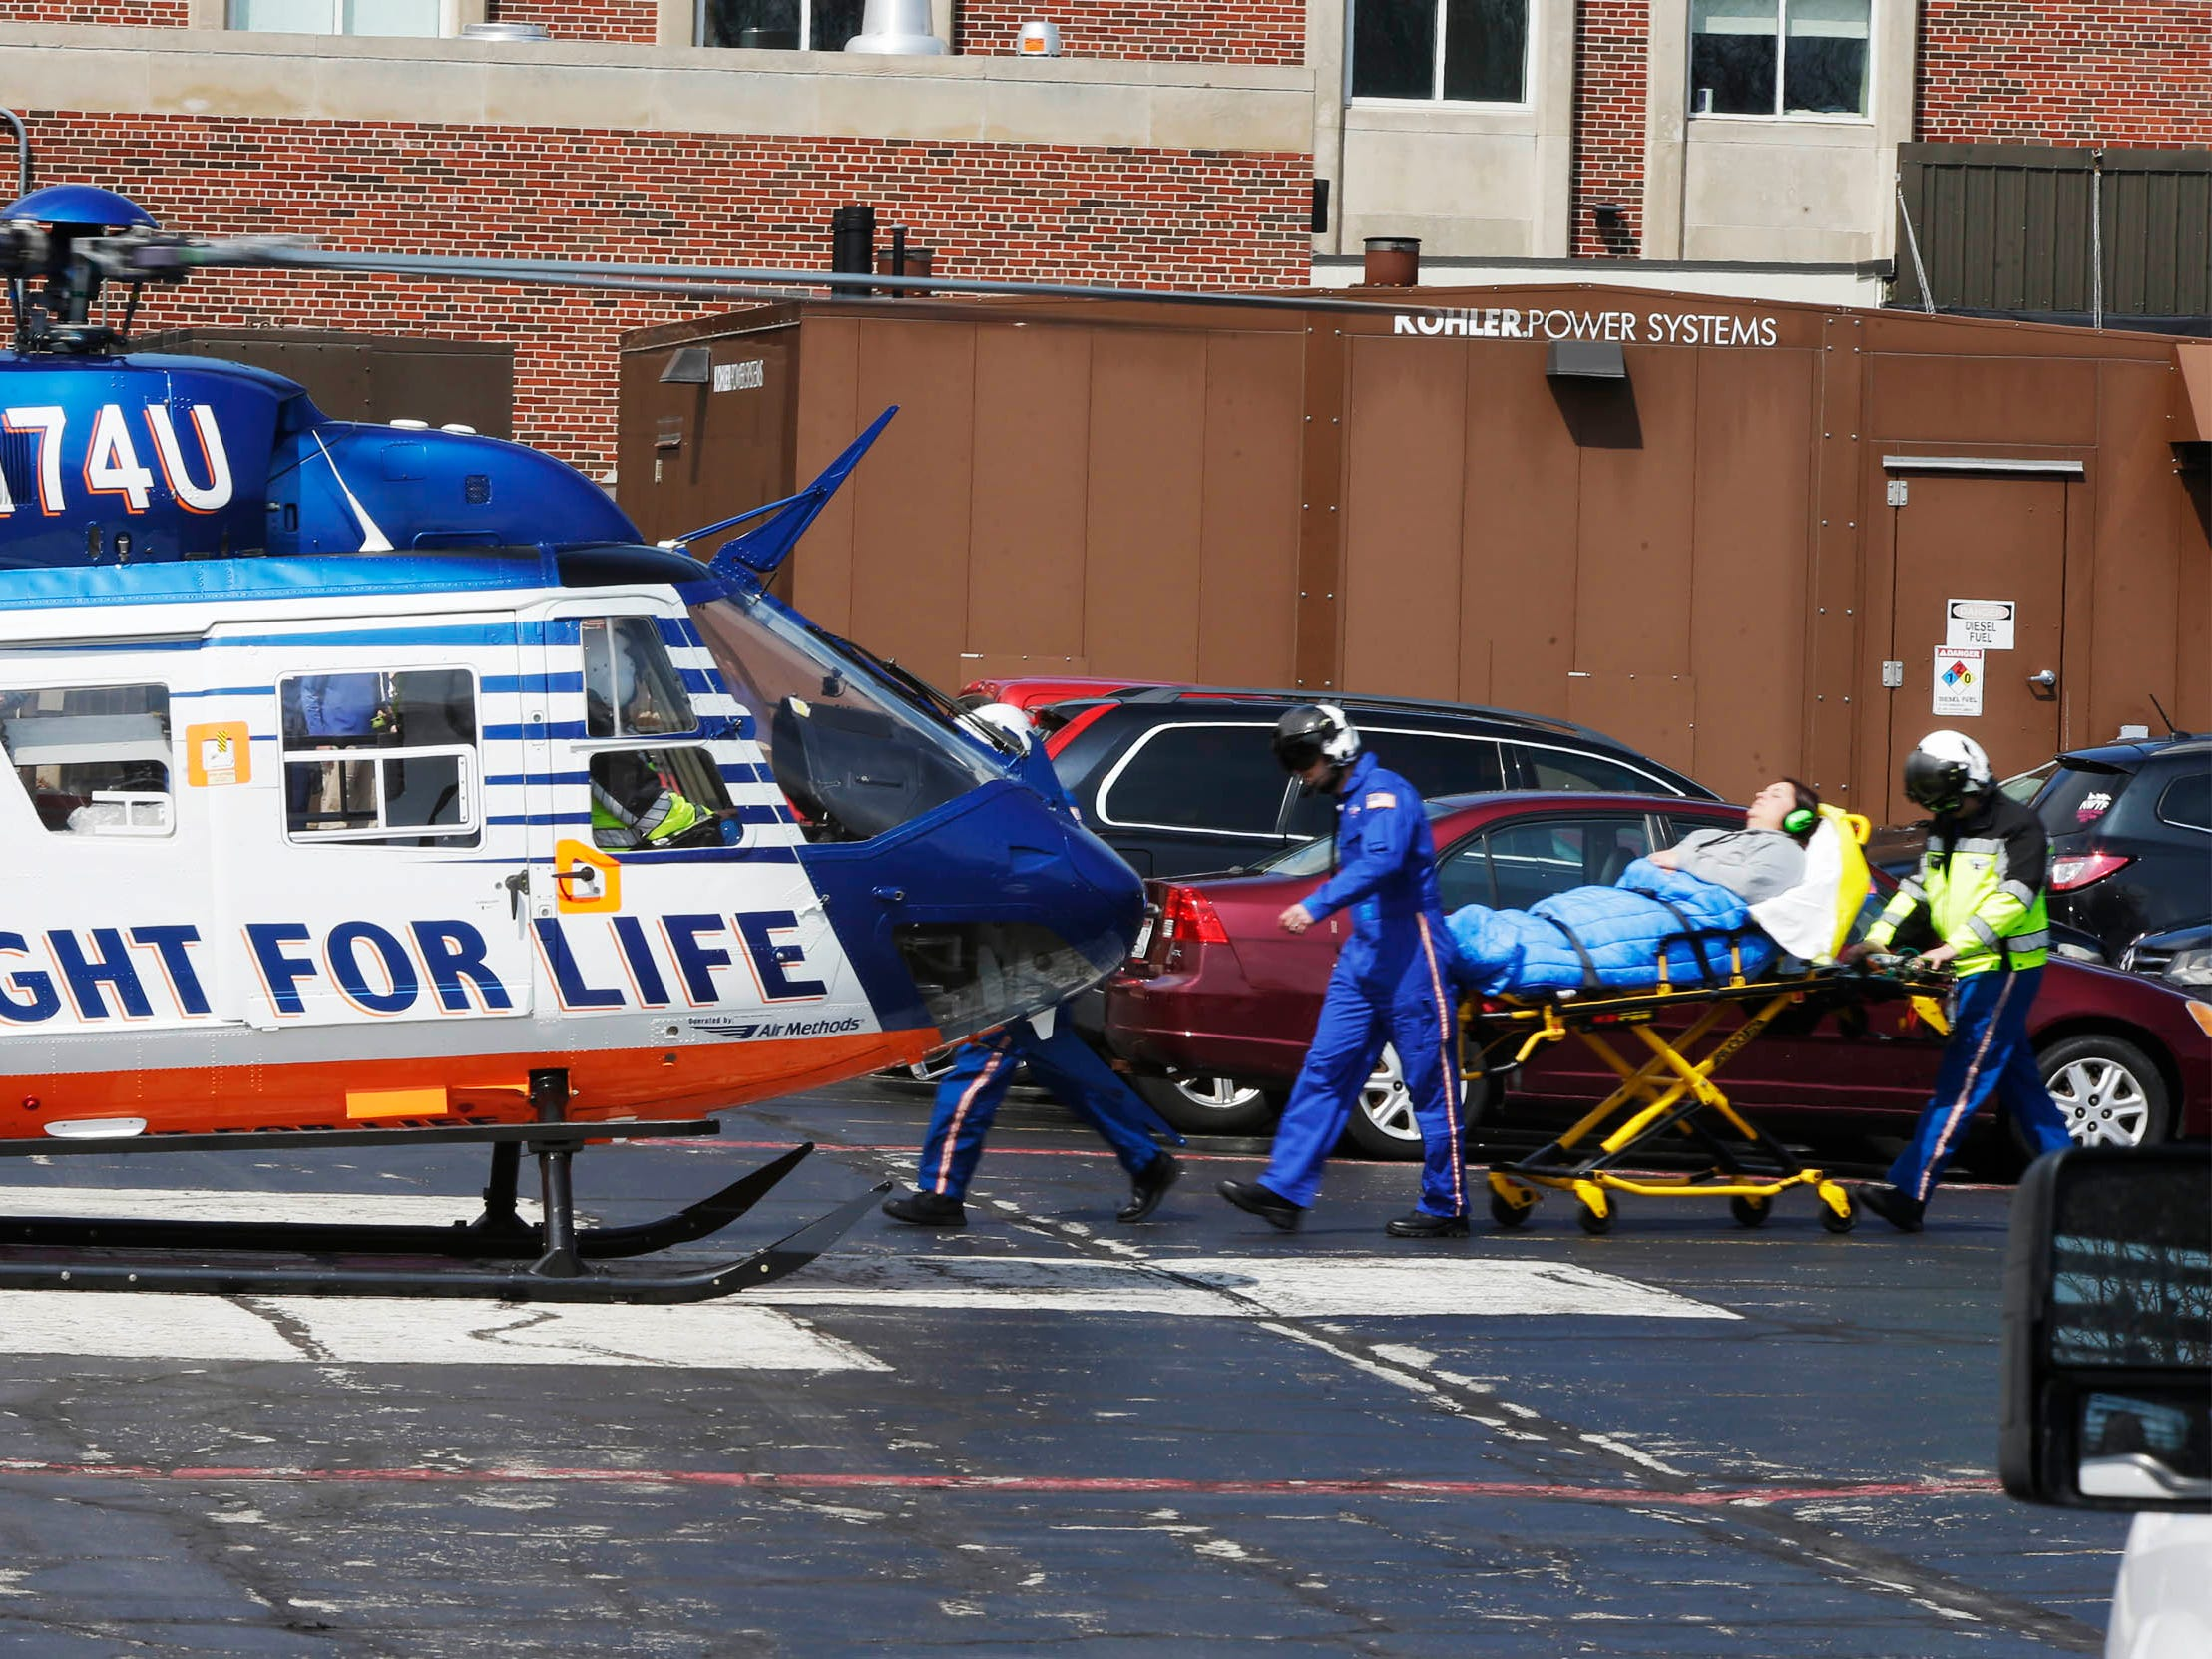 DRILL EXERCISE: A person portraying an injured person is rolled on a stretcher near an awaiting Flight For Life Helicopter at Aurora Sheboygan Memorial Medical Center during a training exercise for Sheboygan area emergency agencies, Tuesday, April 16, 2019, in Sheboygan, Wis.